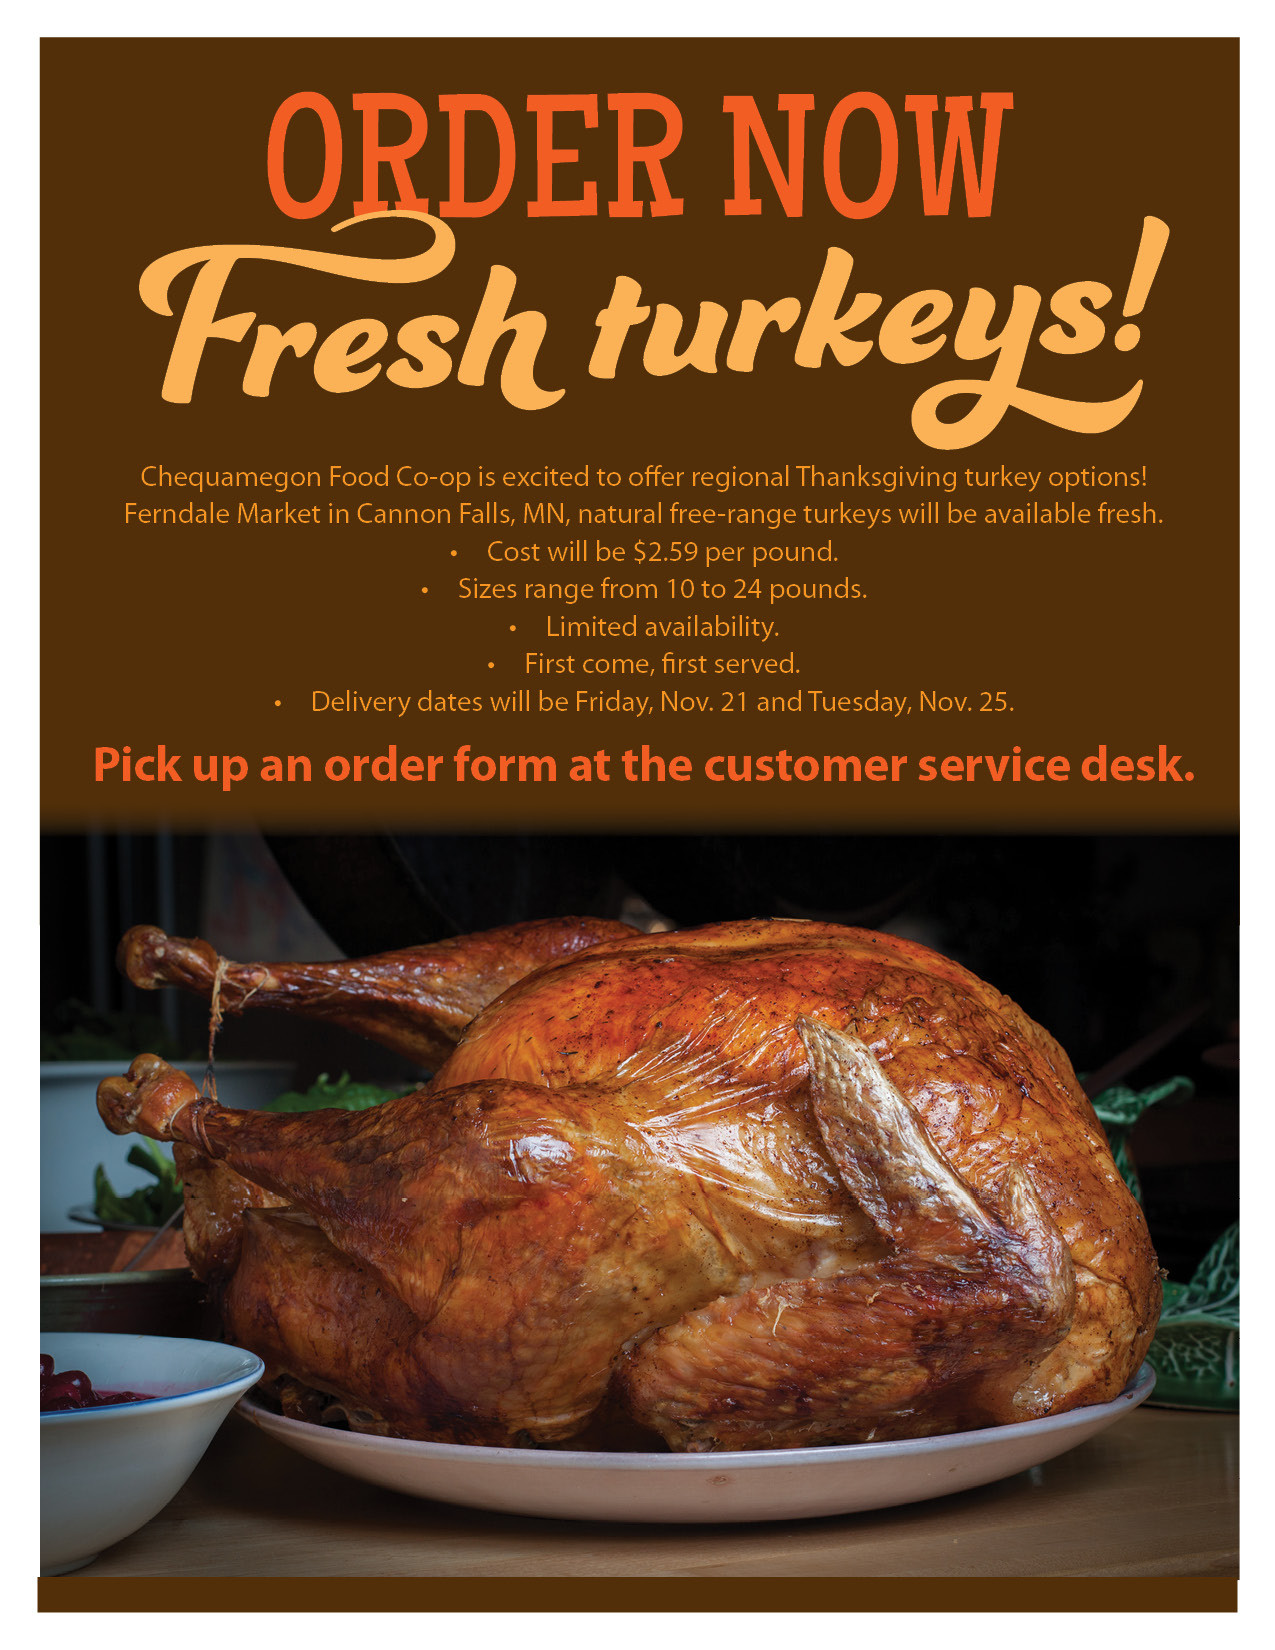 Best Thanksgiving Turkey To Order  Order Your Thanksgiving Turkey line Chequamegon Food